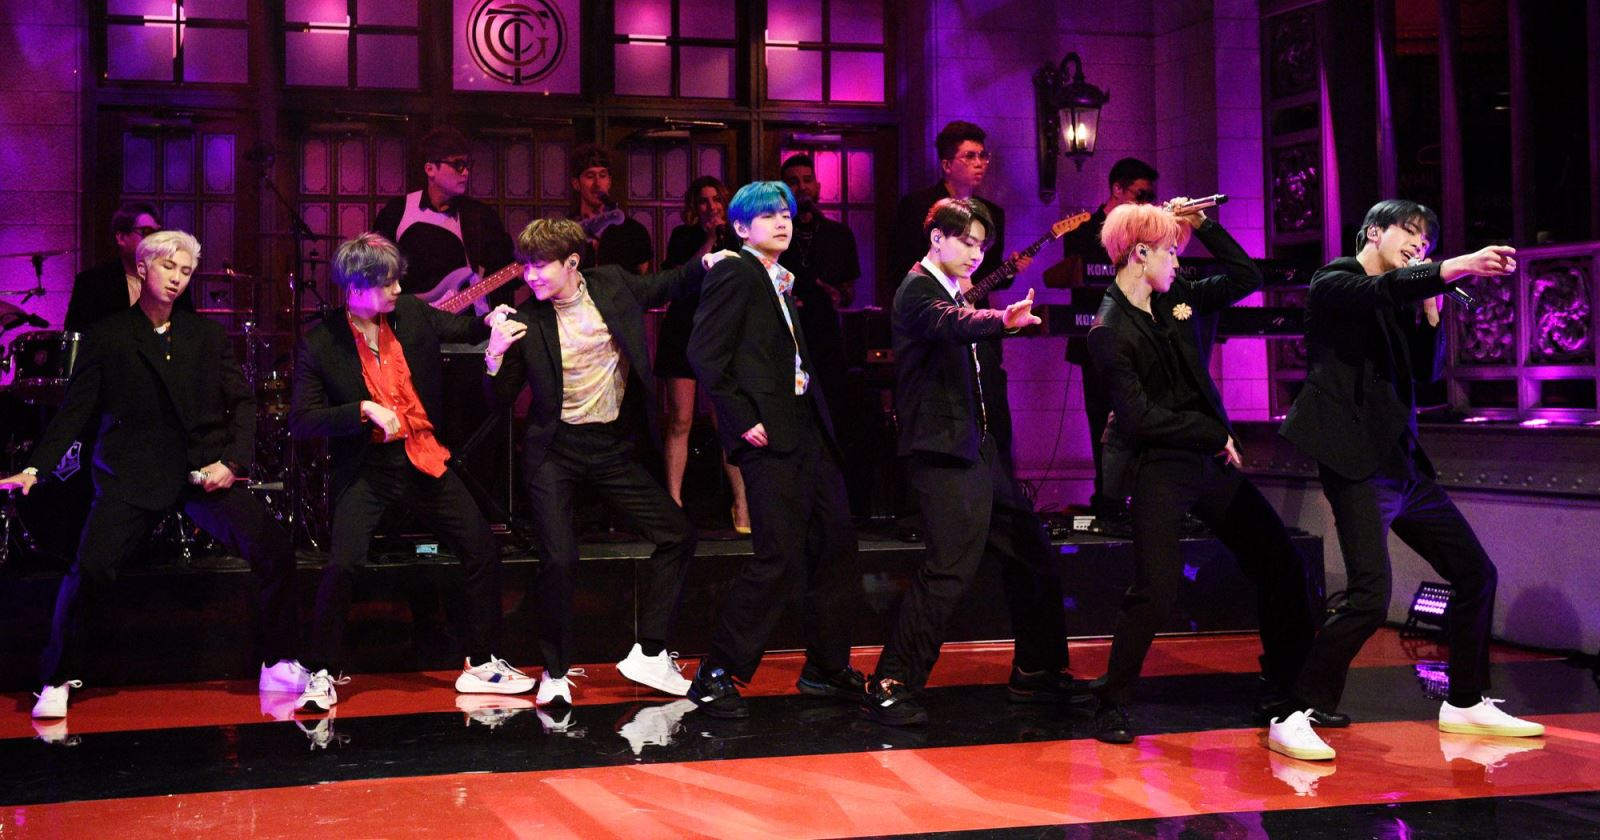 BTS, Bts, bts, Hannah Brown nhảy tango Boy with luv, dwts 2019, tin tức BTS, BTS youtube, BTS jungkook, boy with luv dancing with the stars, MV boy with luv bts